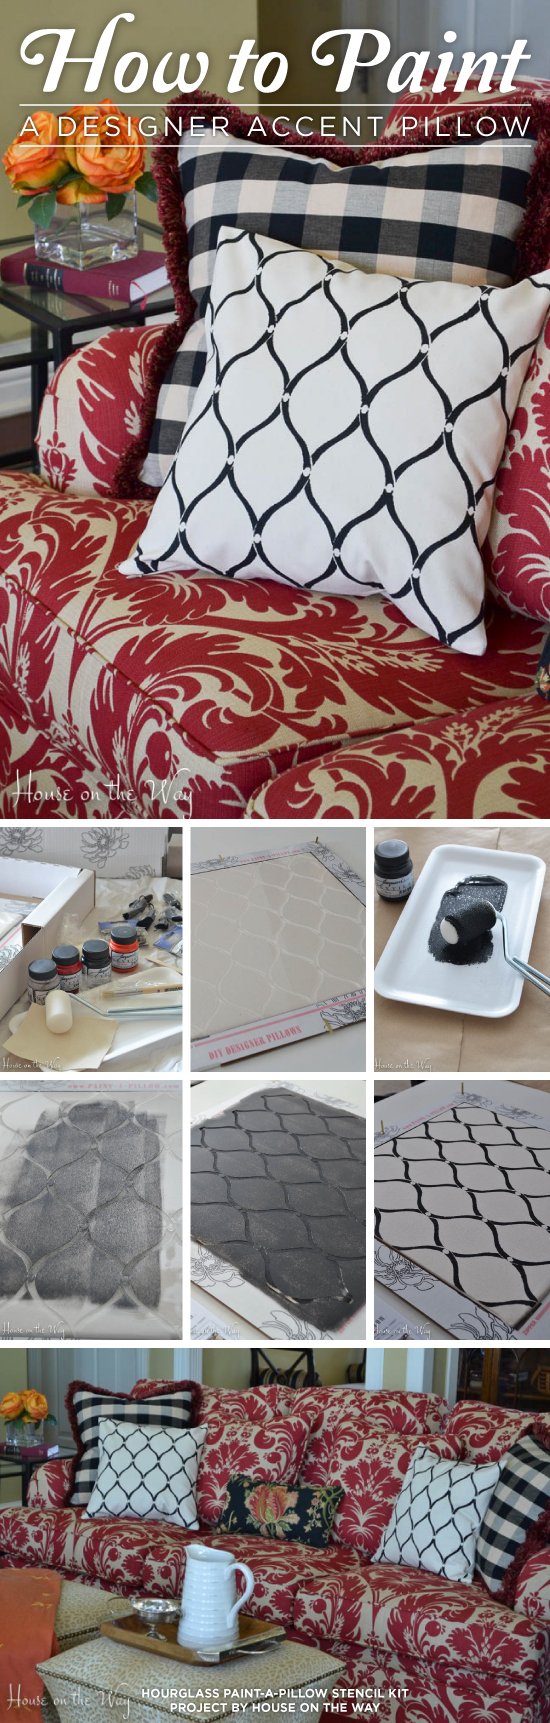 Learn how to paint a DIY designer accent pillow using the Hourglass Paint-A-Pillow kit. http://paintapillow.com/index.php/hourglass-paint-a-pillow-kit.html